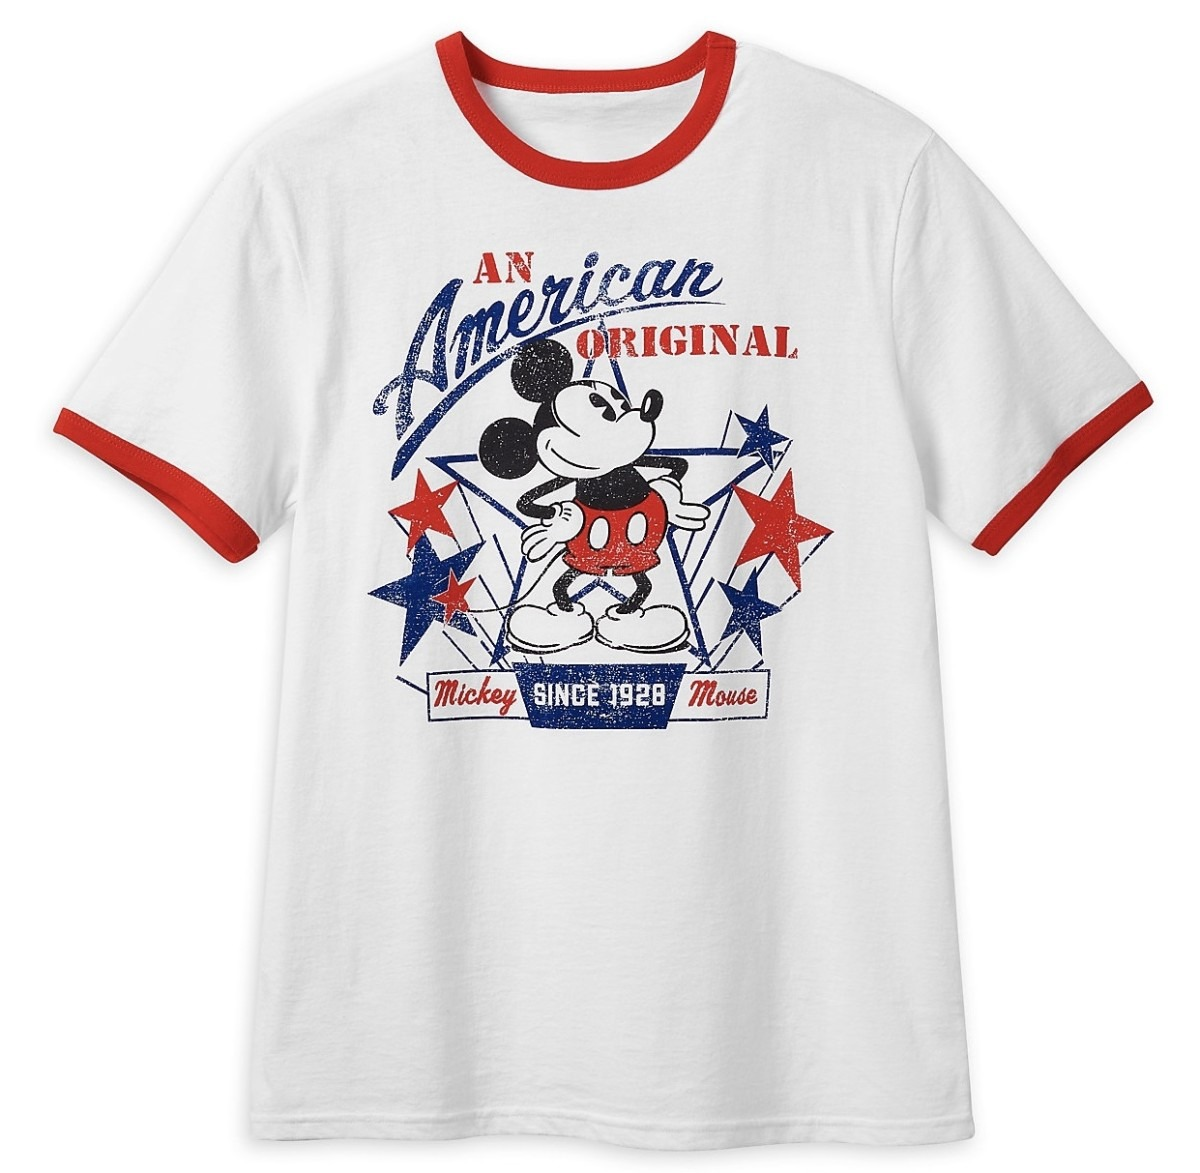 New Disney Americana Merchandise Now on shopDisney 4